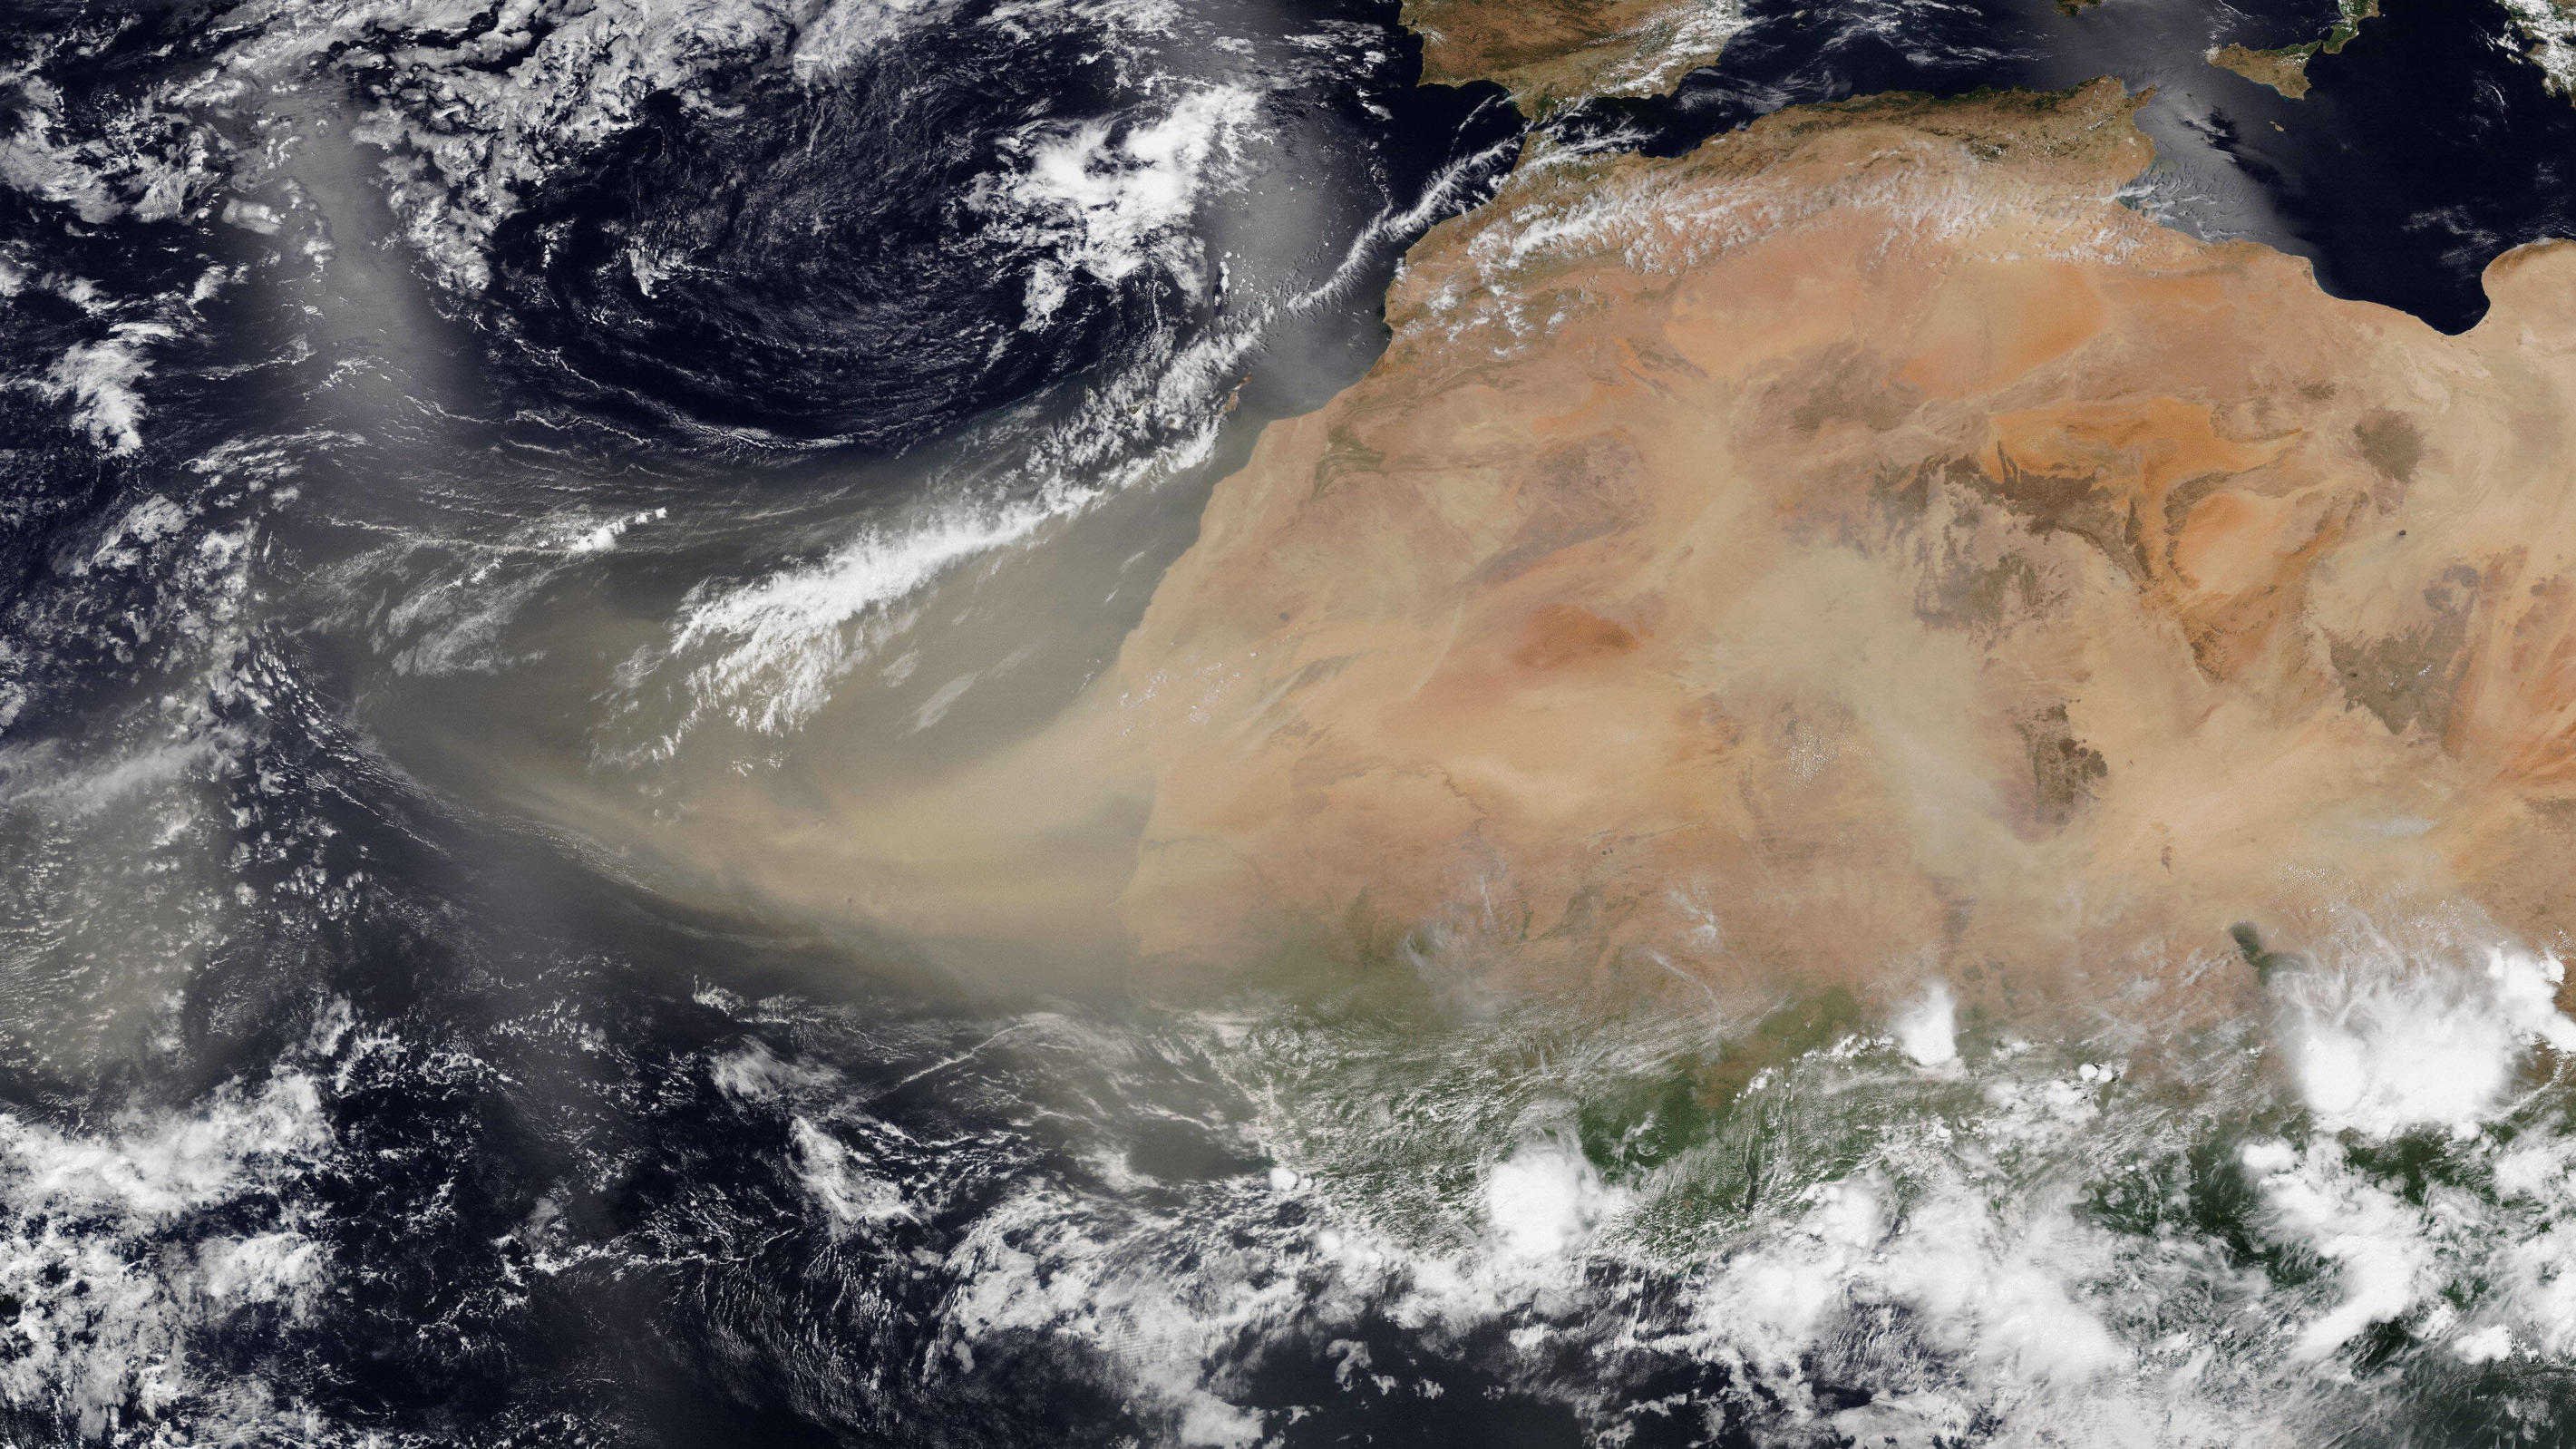 Sahara-Staub zieht über Atlantik June 26, 2020, Atlantic Ocean: NASA- s Suomi NPP satellite captured this visible image of the large light brown plume of Saharan dust over the North Atlantic Ocean. Experts have nicknamed the plume the Godzilla dust c